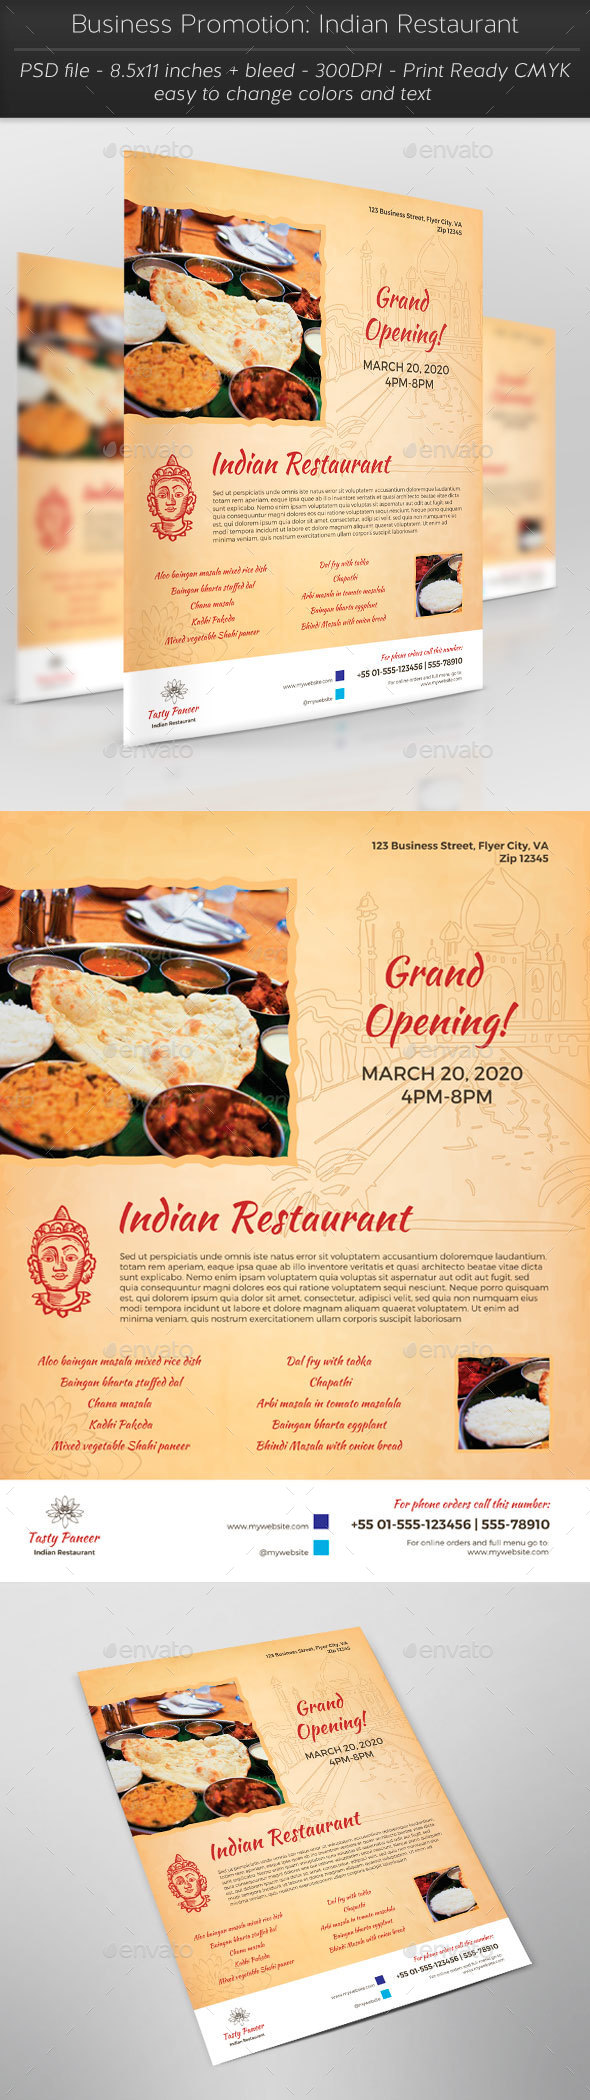 Business Promotion: Indian Restaurant - Restaurant Flyers